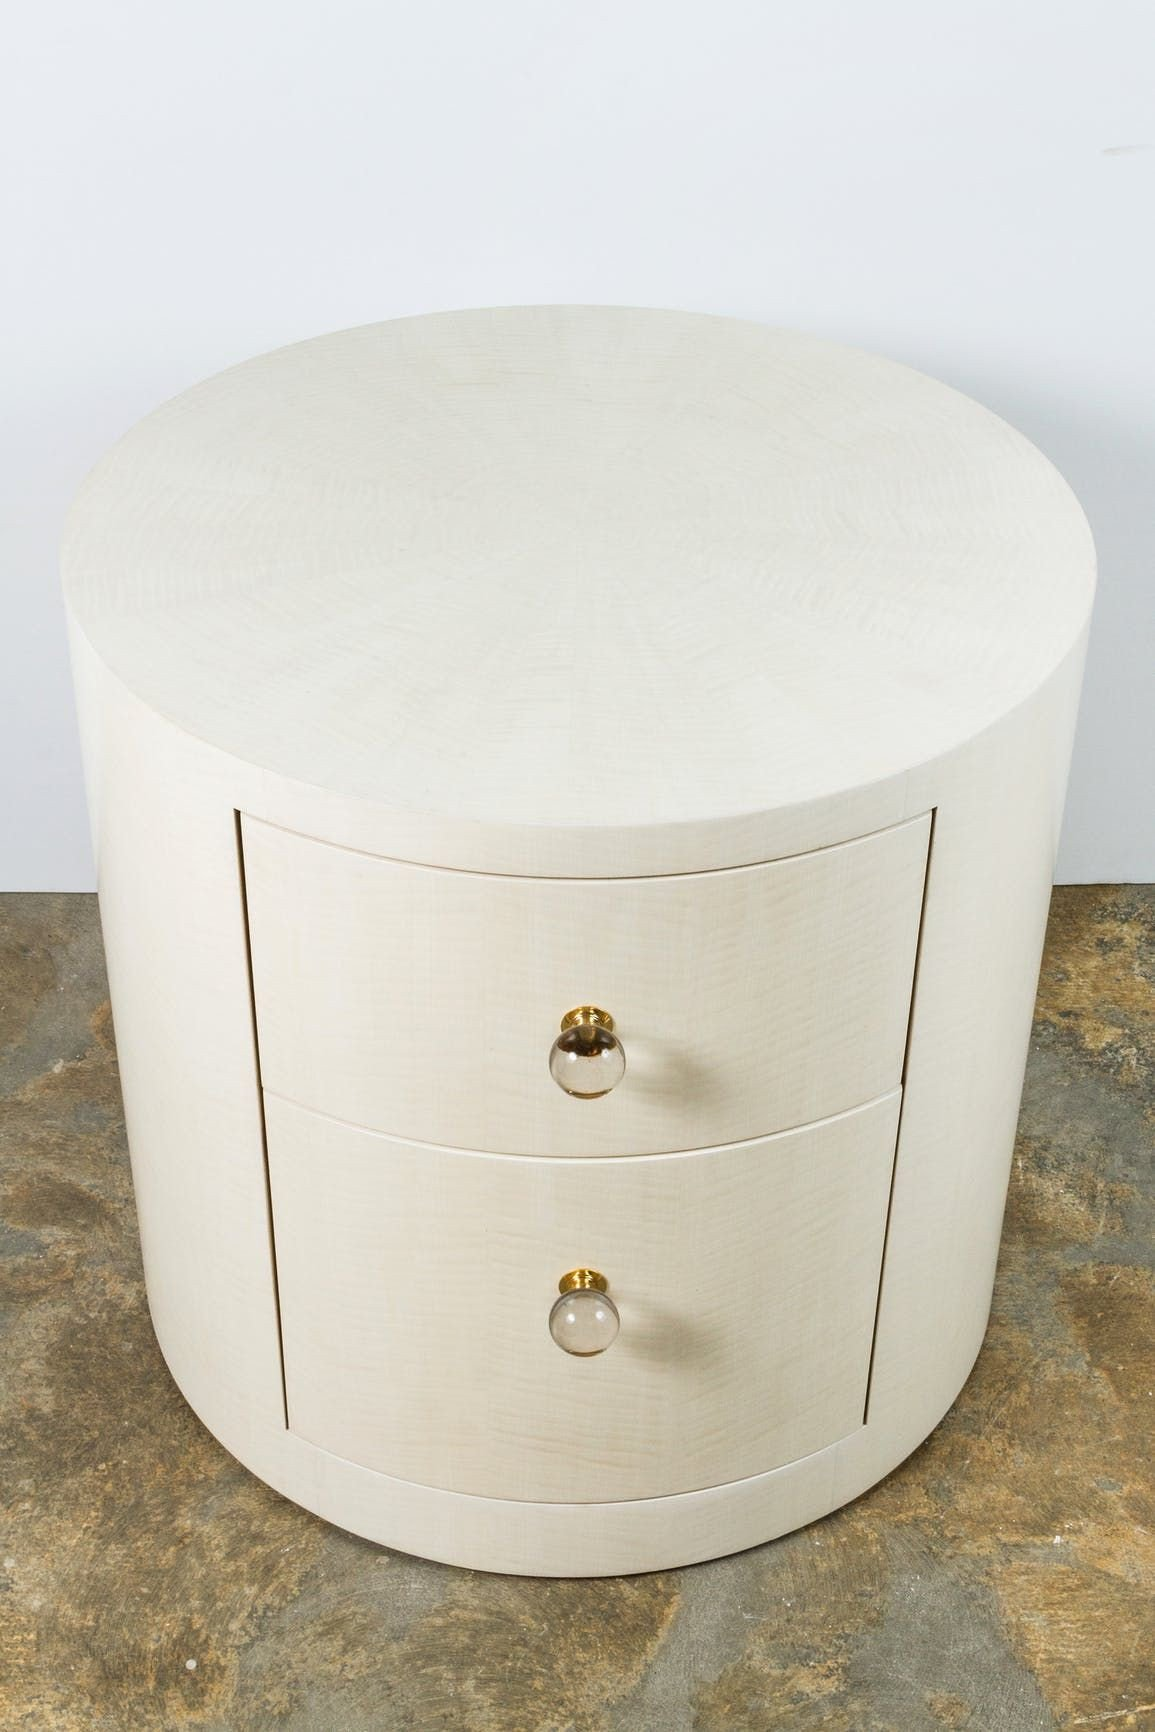 Side Tables for Bedroom Awesome Italian Inspired 1970s Style Round Nightstand